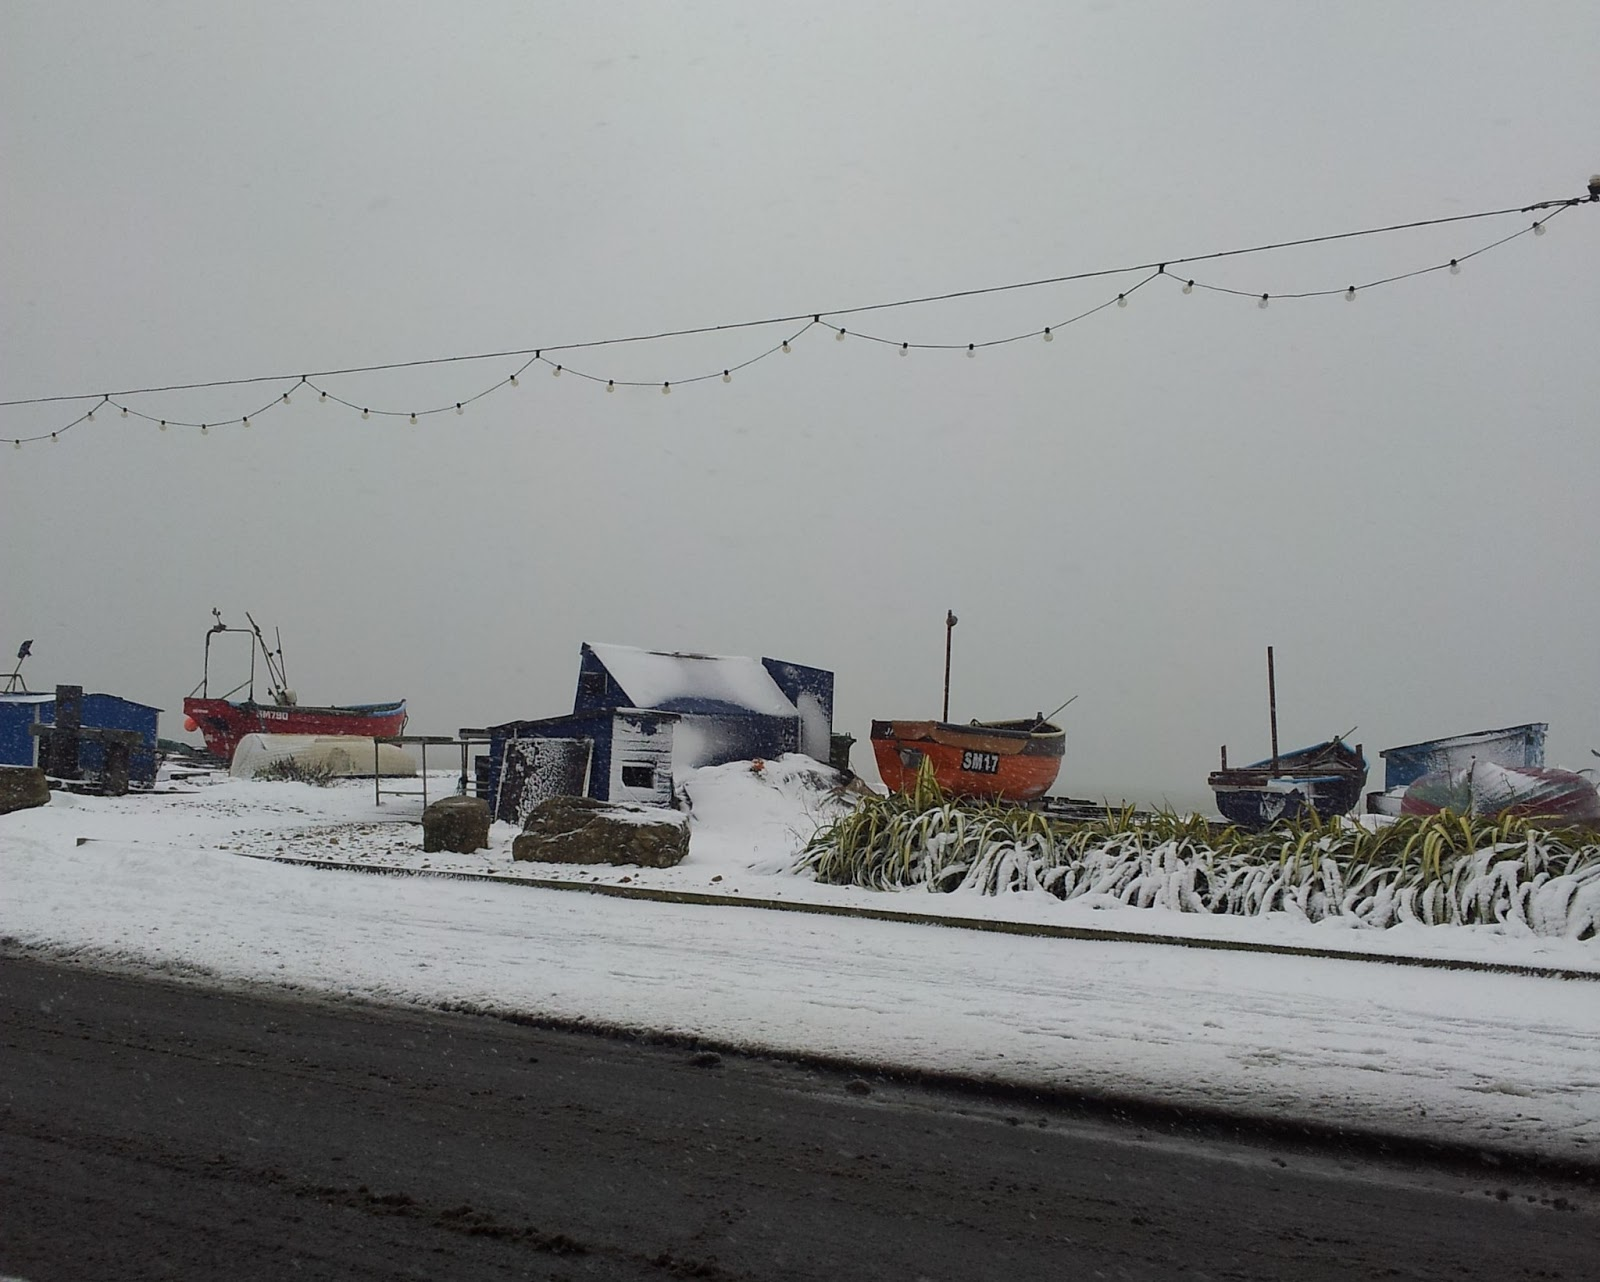 Worthing seafront in the snow